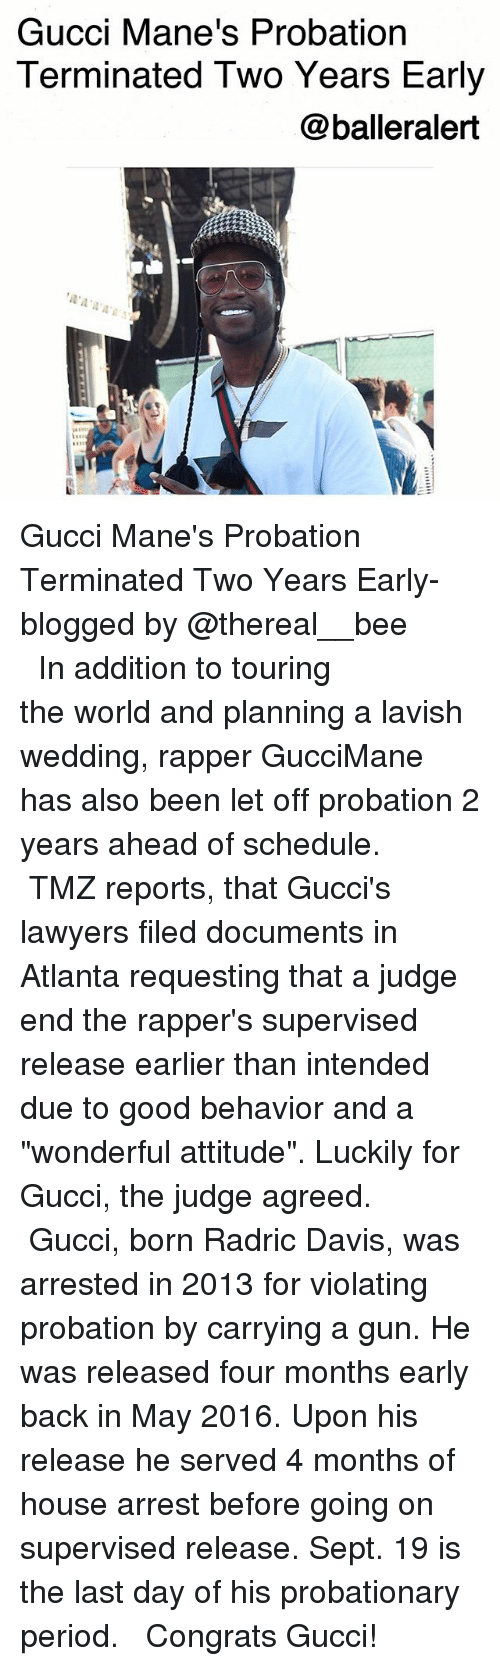 """Gucci, Memes, and Period: Gucci Mane's Probation  Terminated Two Years Early  @balleralert Gucci Mane's Probation Terminated Two Years Early-blogged by @thereal__bee ⠀⠀⠀⠀⠀⠀⠀⠀⠀ ⠀⠀ In addition to touring the world and planning a lavish wedding, rapper GucciMane has also been let off probation 2 years ahead of schedule. ⠀⠀⠀⠀⠀⠀⠀⠀⠀ ⠀⠀ TMZ reports, that Gucci's lawyers filed documents in Atlanta requesting that a judge end the rapper's supervised release earlier than intended due to good behavior and a """"wonderful attitude"""". Luckily for Gucci, the judge agreed. ⠀⠀⠀⠀⠀⠀⠀⠀⠀ ⠀⠀ Gucci, born Radric Davis, was arrested in 2013 for violating probation by carrying a gun. He was released four months early back in May 2016. Upon his release he served 4 months of house arrest before going on supervised release. Sept. 19 is the last day of his probationary period. ⠀⠀⠀⠀⠀⠀⠀⠀⠀ ⠀⠀ Congrats Gucci!"""